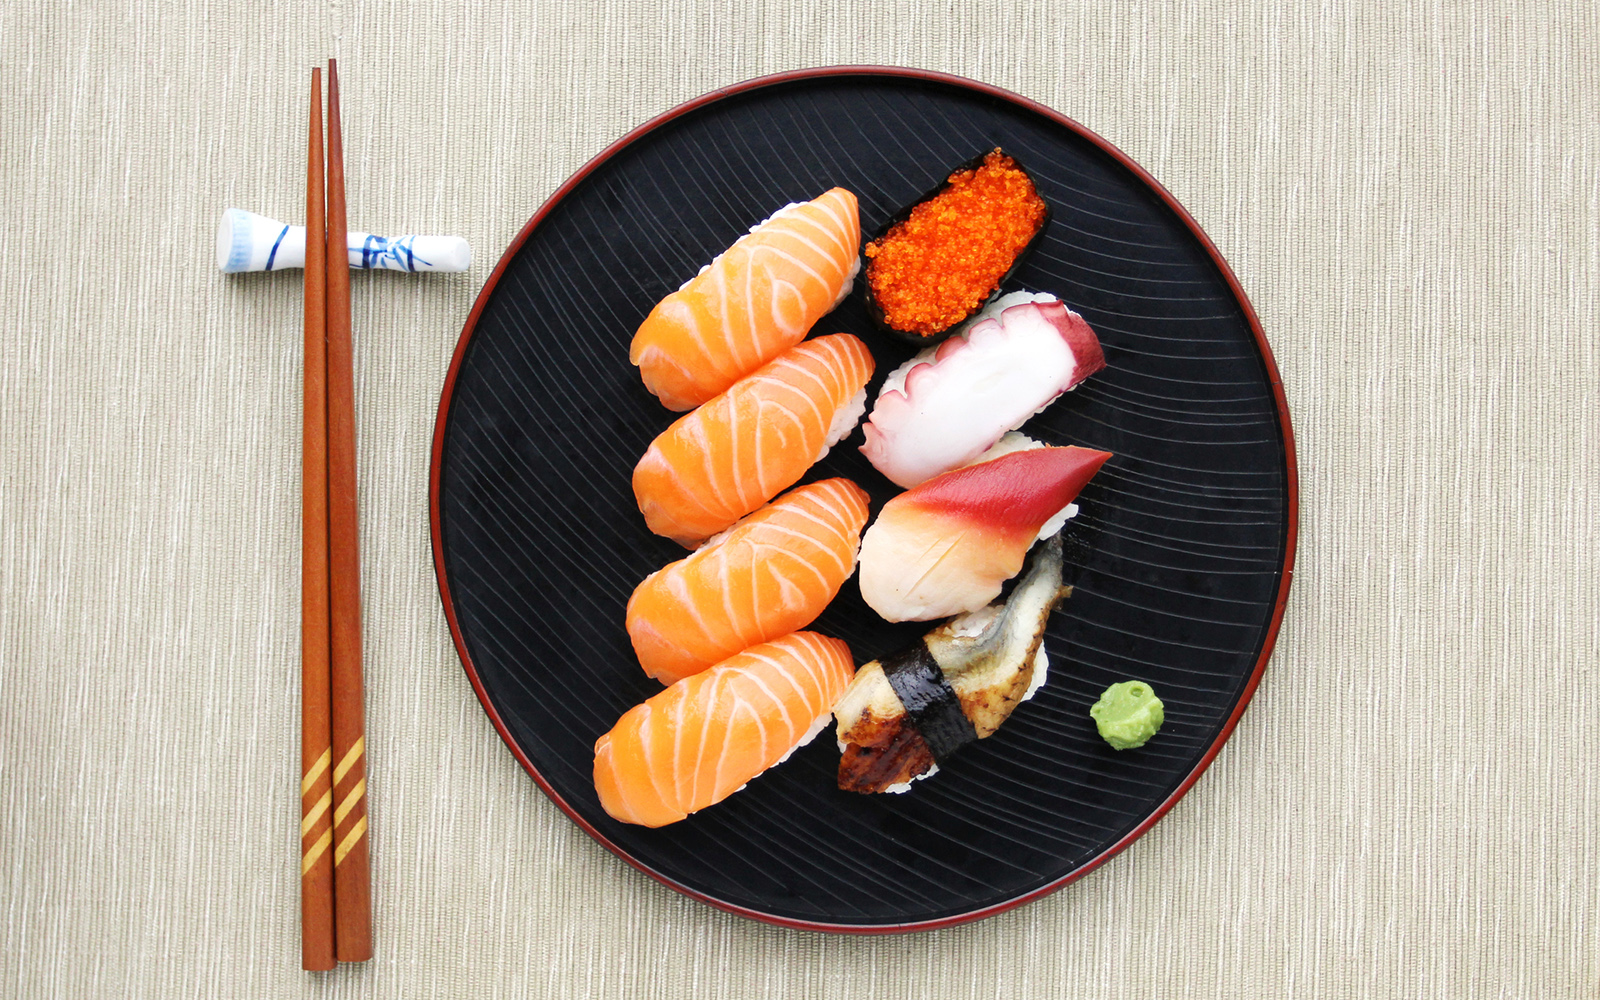 Ten rules (and some notions) for not overdoing sushi